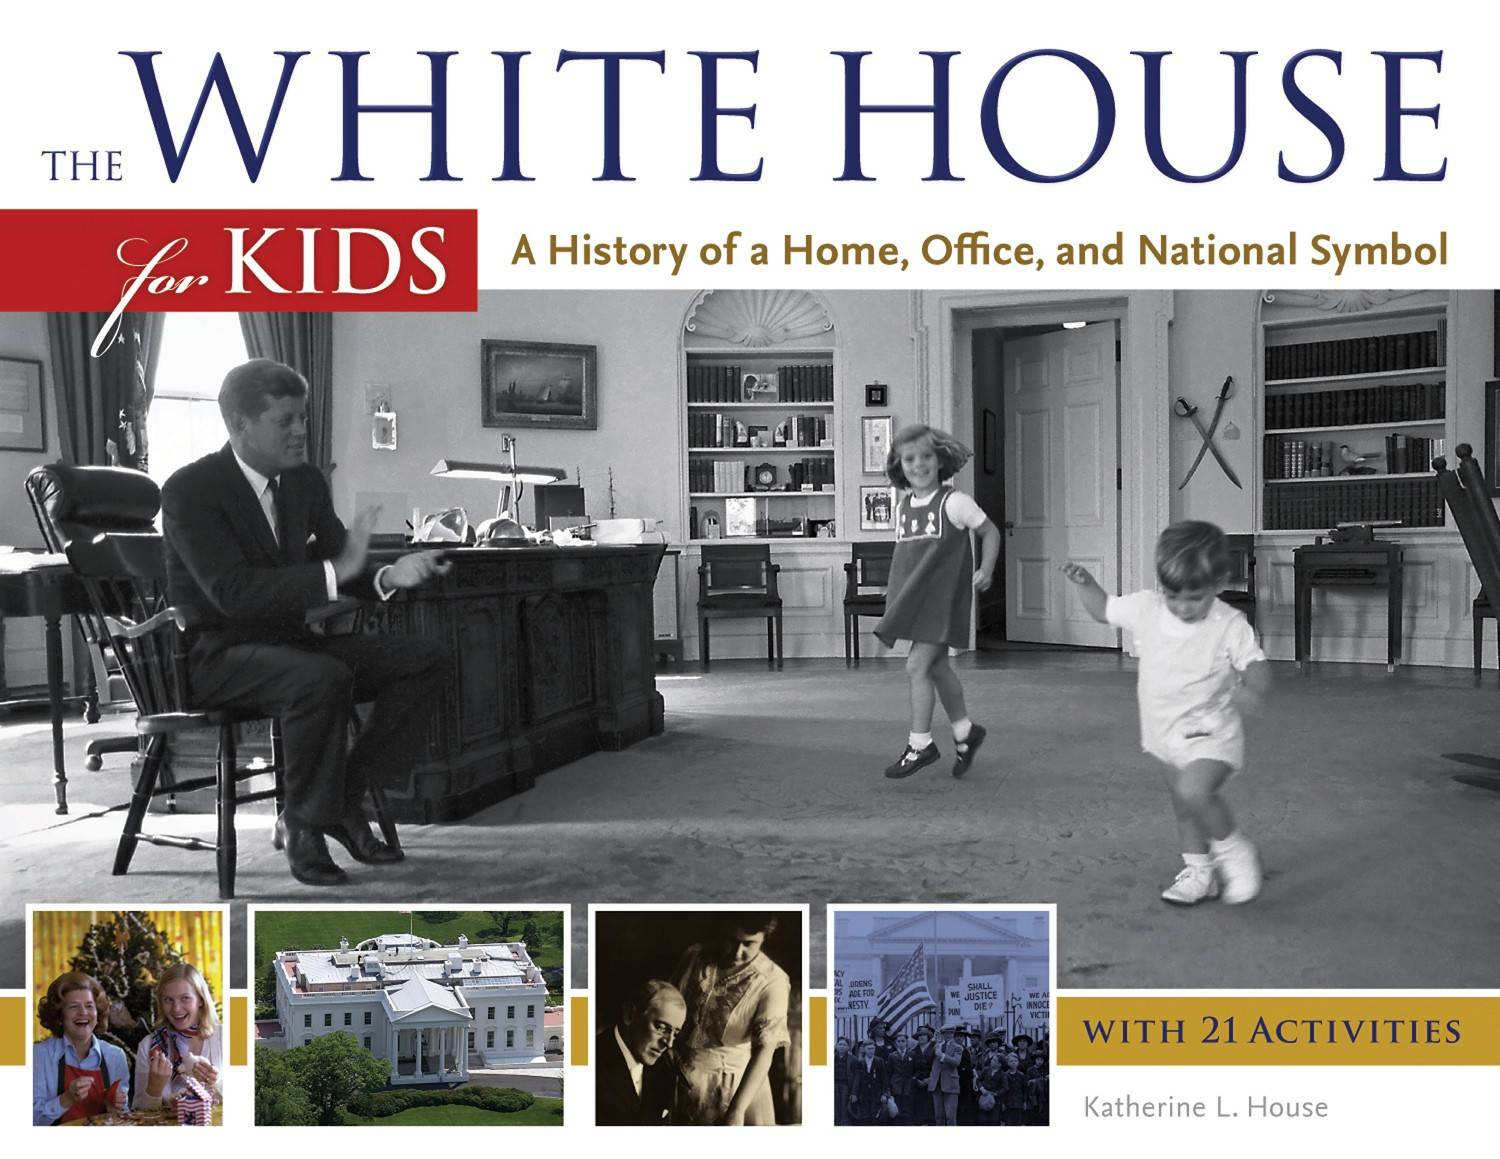 """The White House for Kids: A History of a Home, Office, and National Symbol"" by Katherine L. House (2014, Chicago Review Press), $16.95, 139 pages."